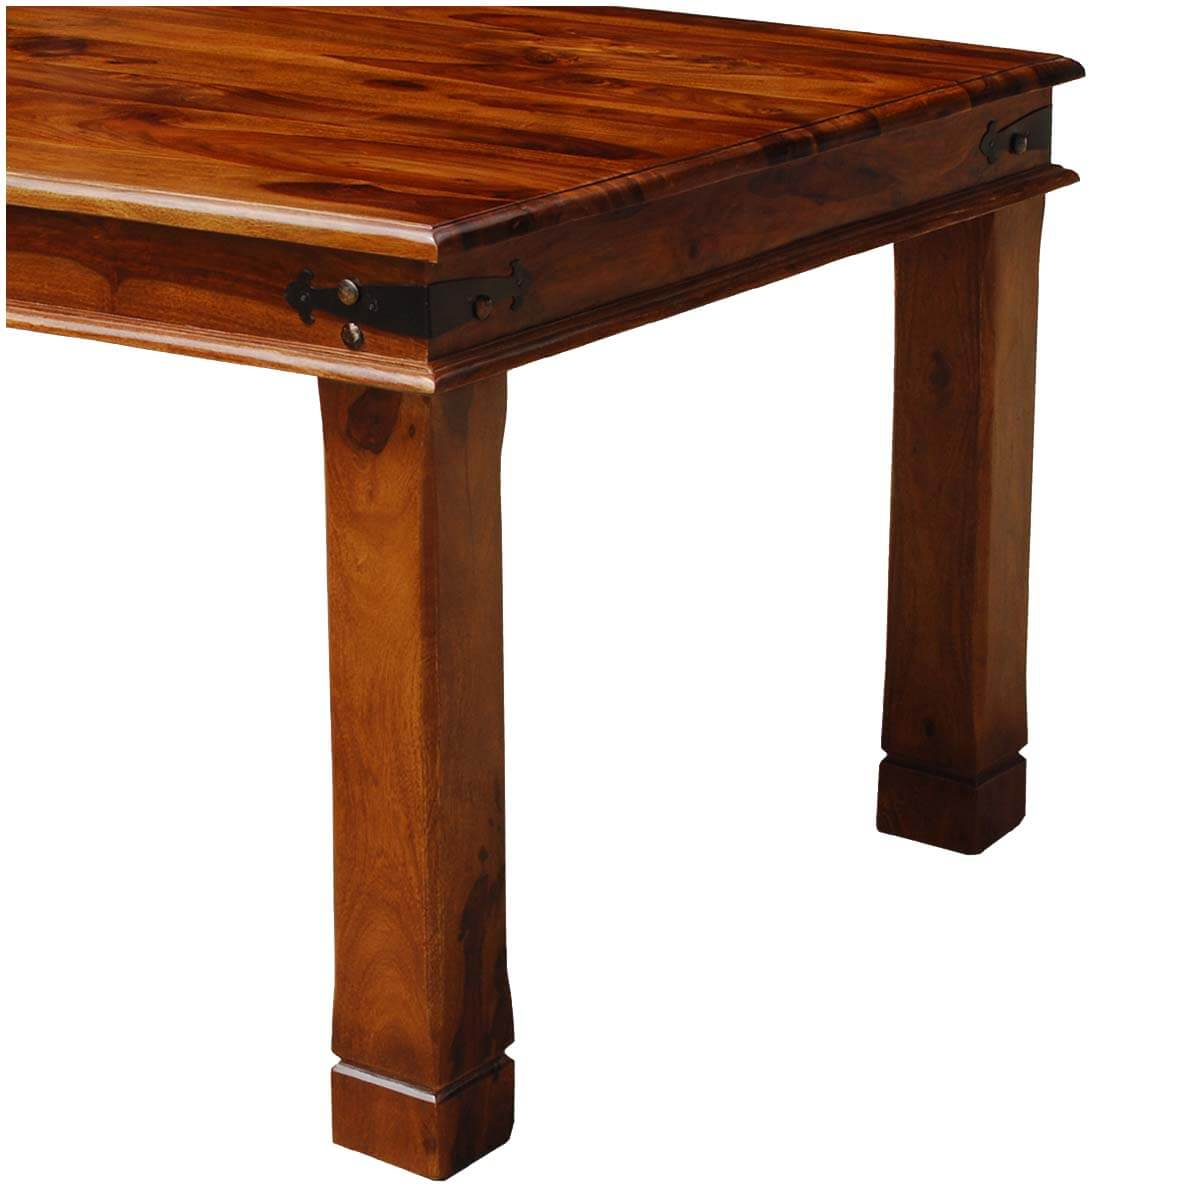 Solid Wood Transitional Dining Table And Chairs Set: Fannin Transitional Solid Wood Double Edge Dining Table